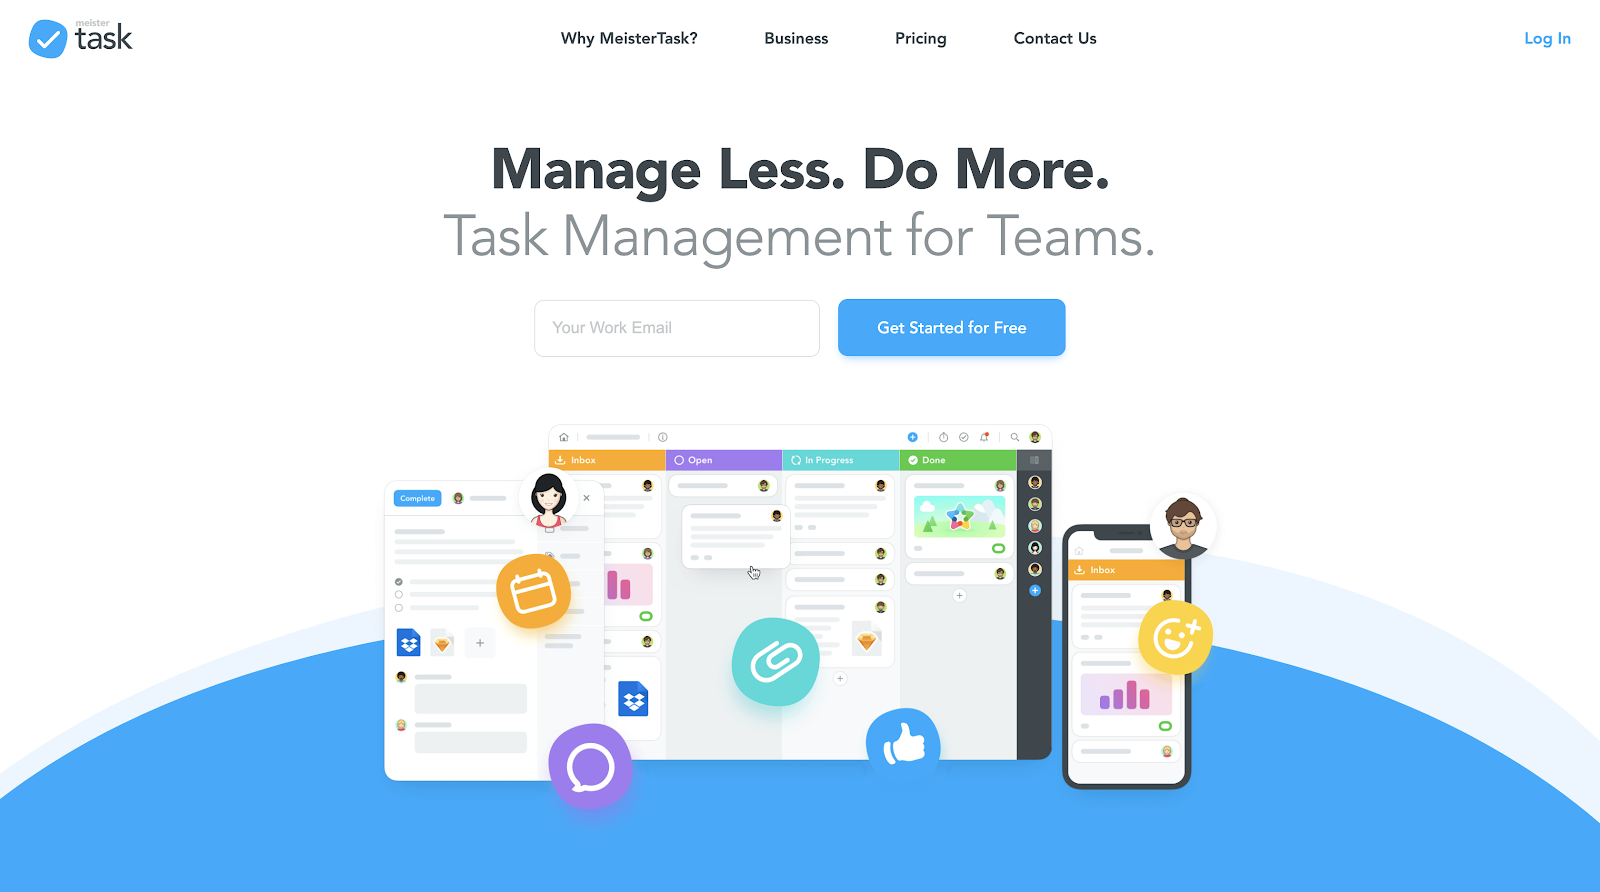 meistertask - Manage Less. Do More